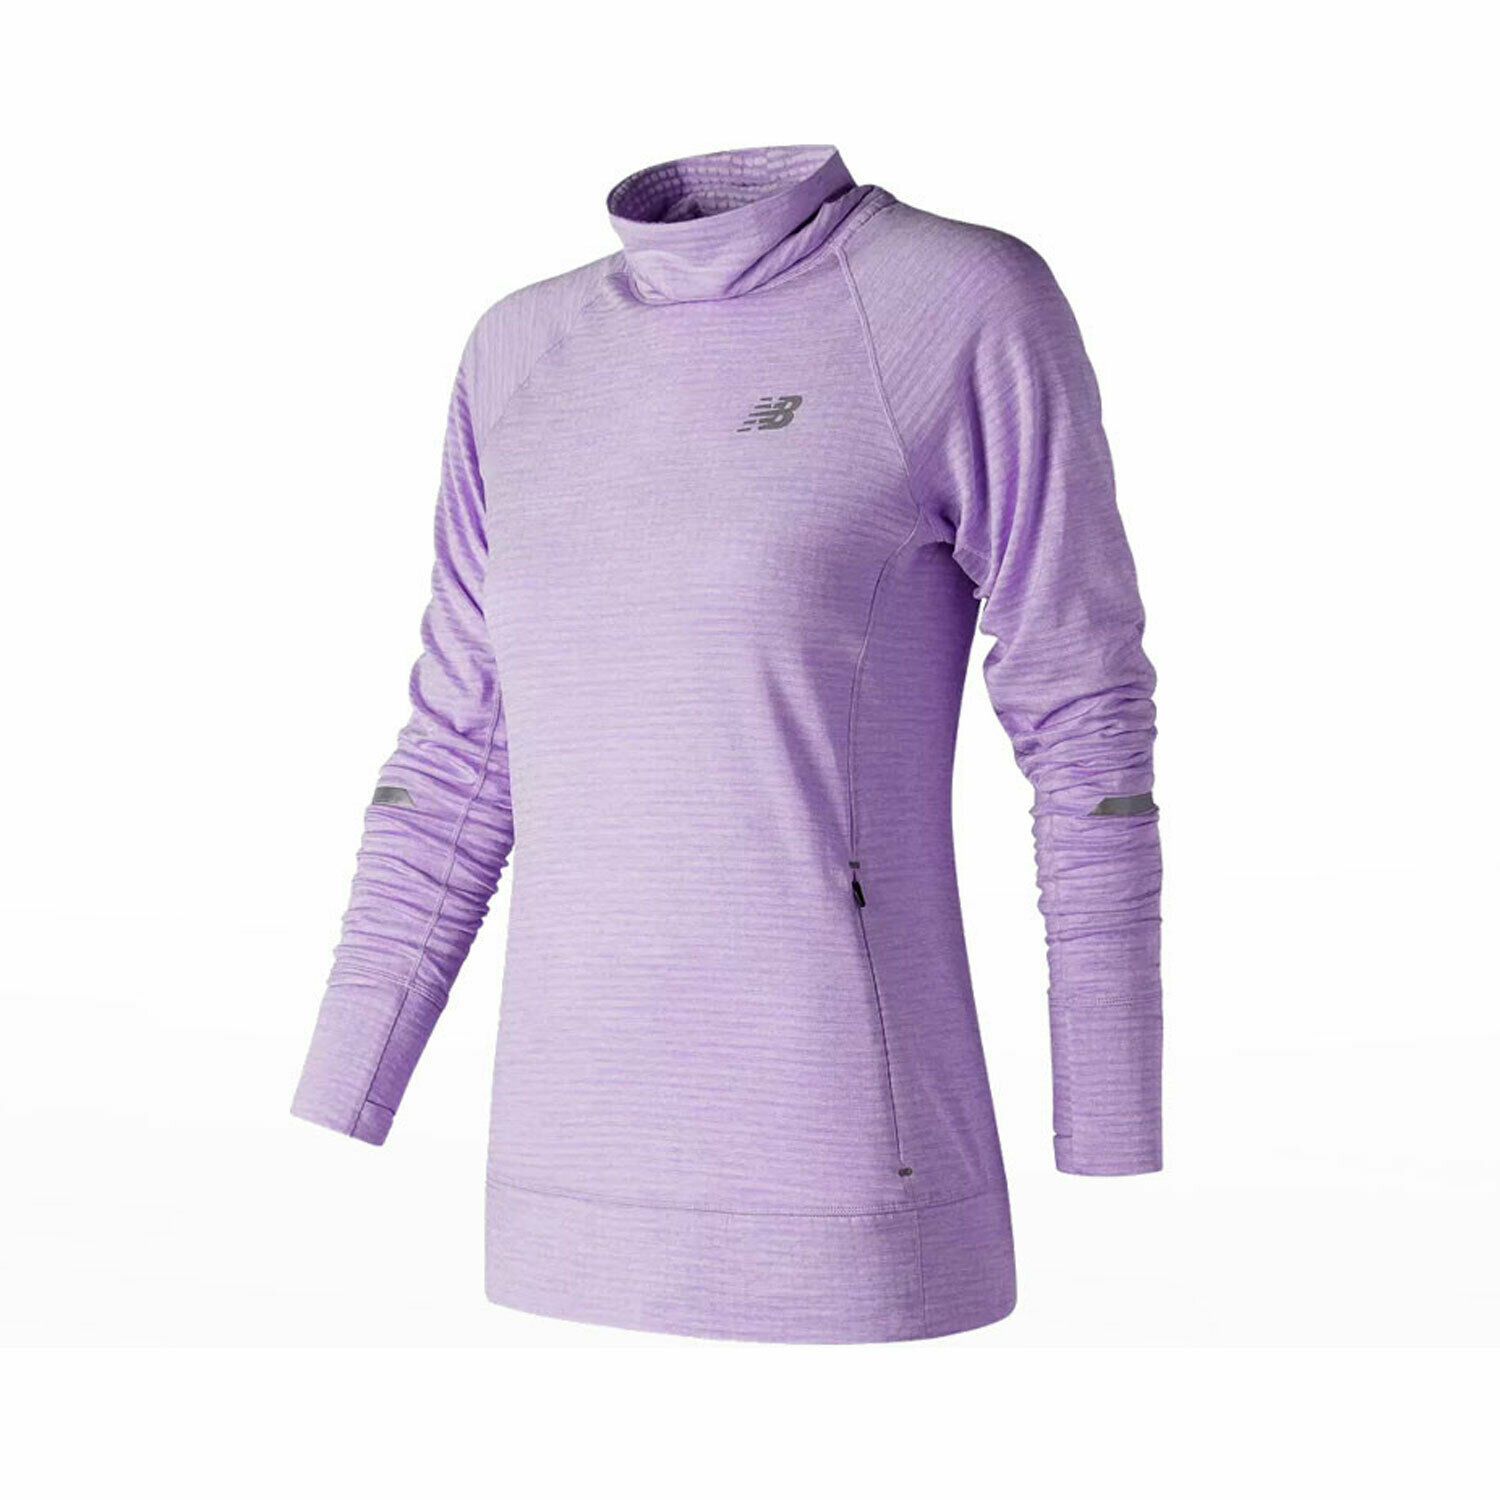 New Balance Womens Heat Pull Over Long Sleeve Training Top